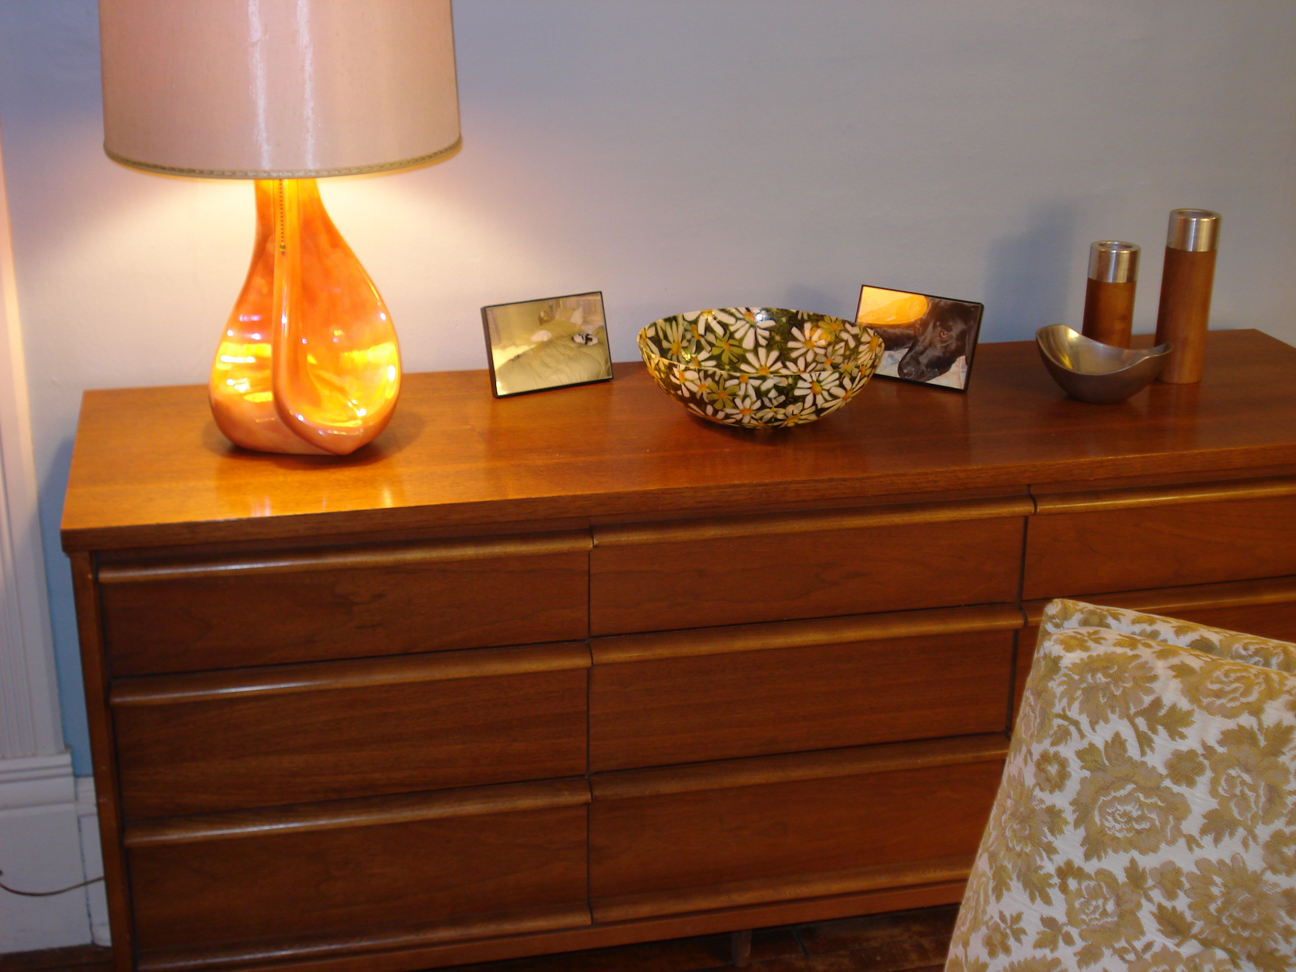 Mid Century dresser with cute table standing lamp and chair in floral motif